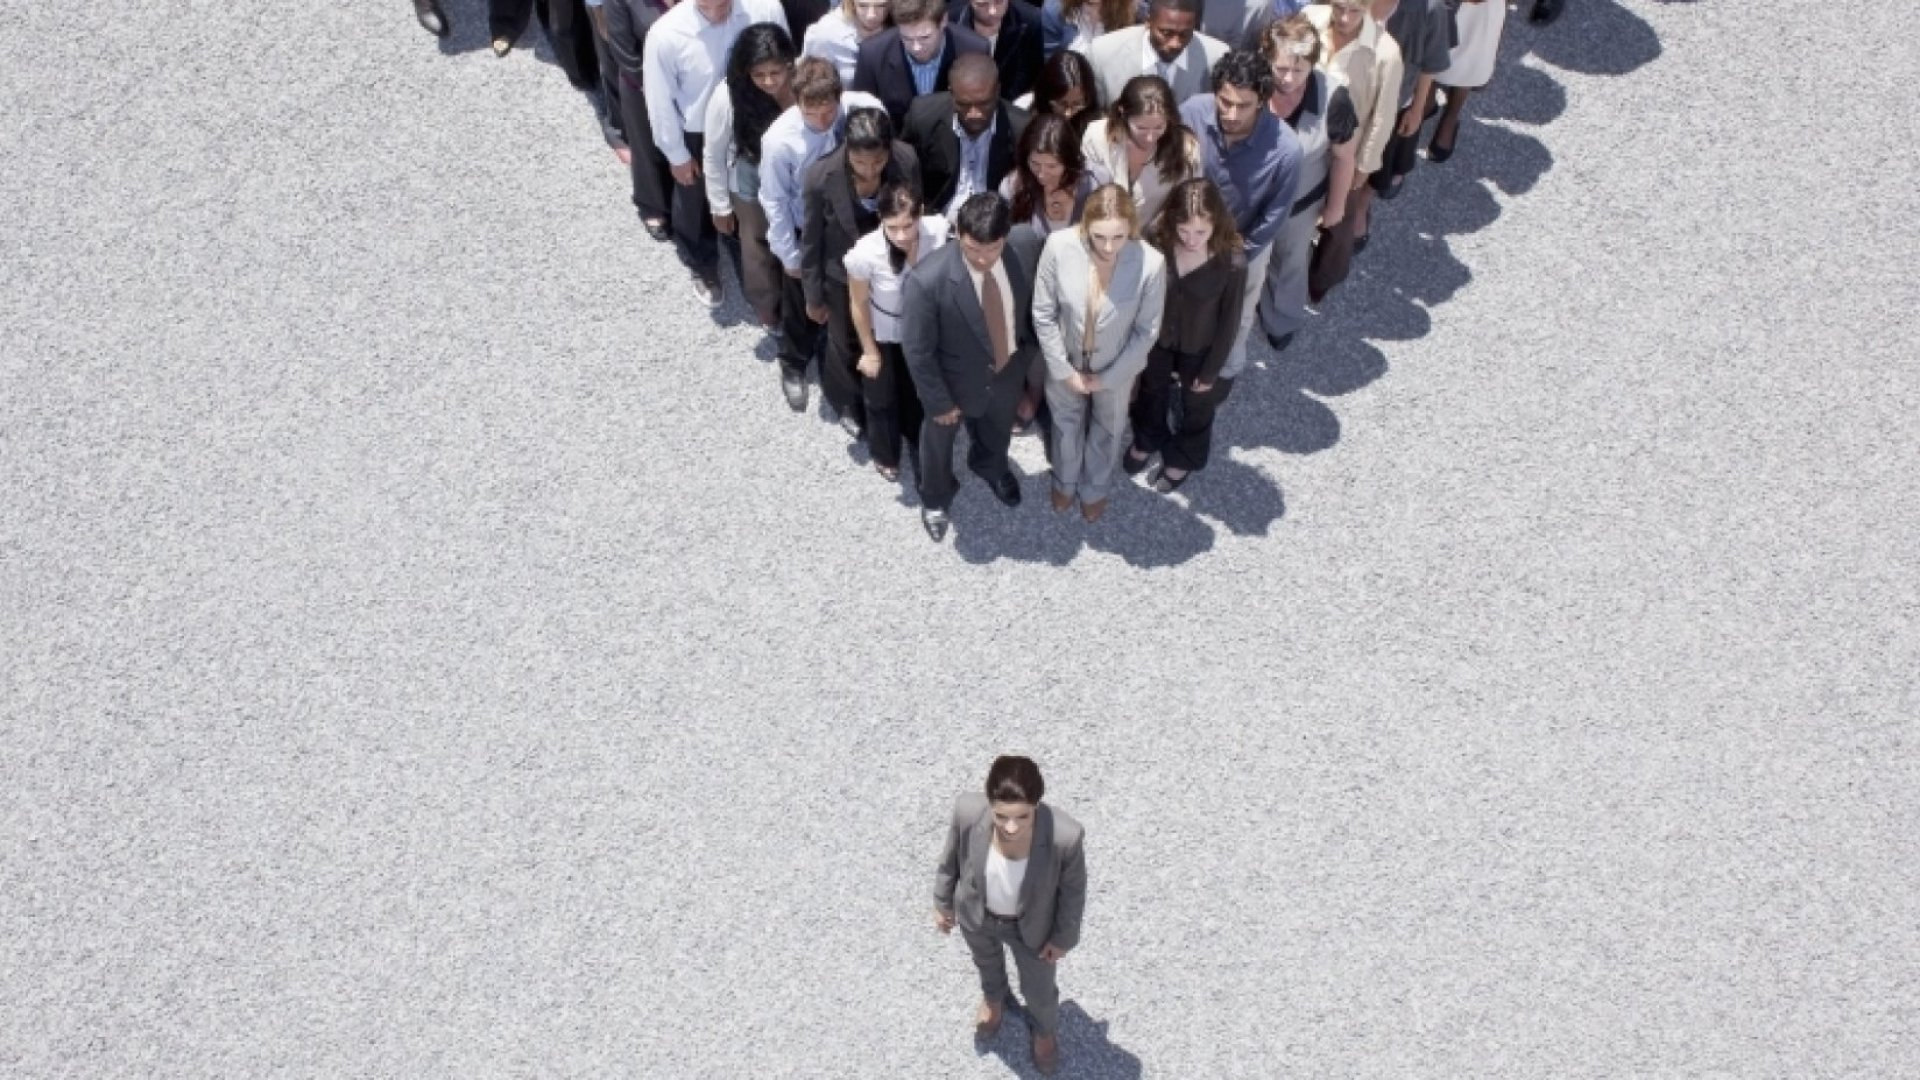 12 Distinctive Ways to Impress Your Team That Will Make You Stand Out